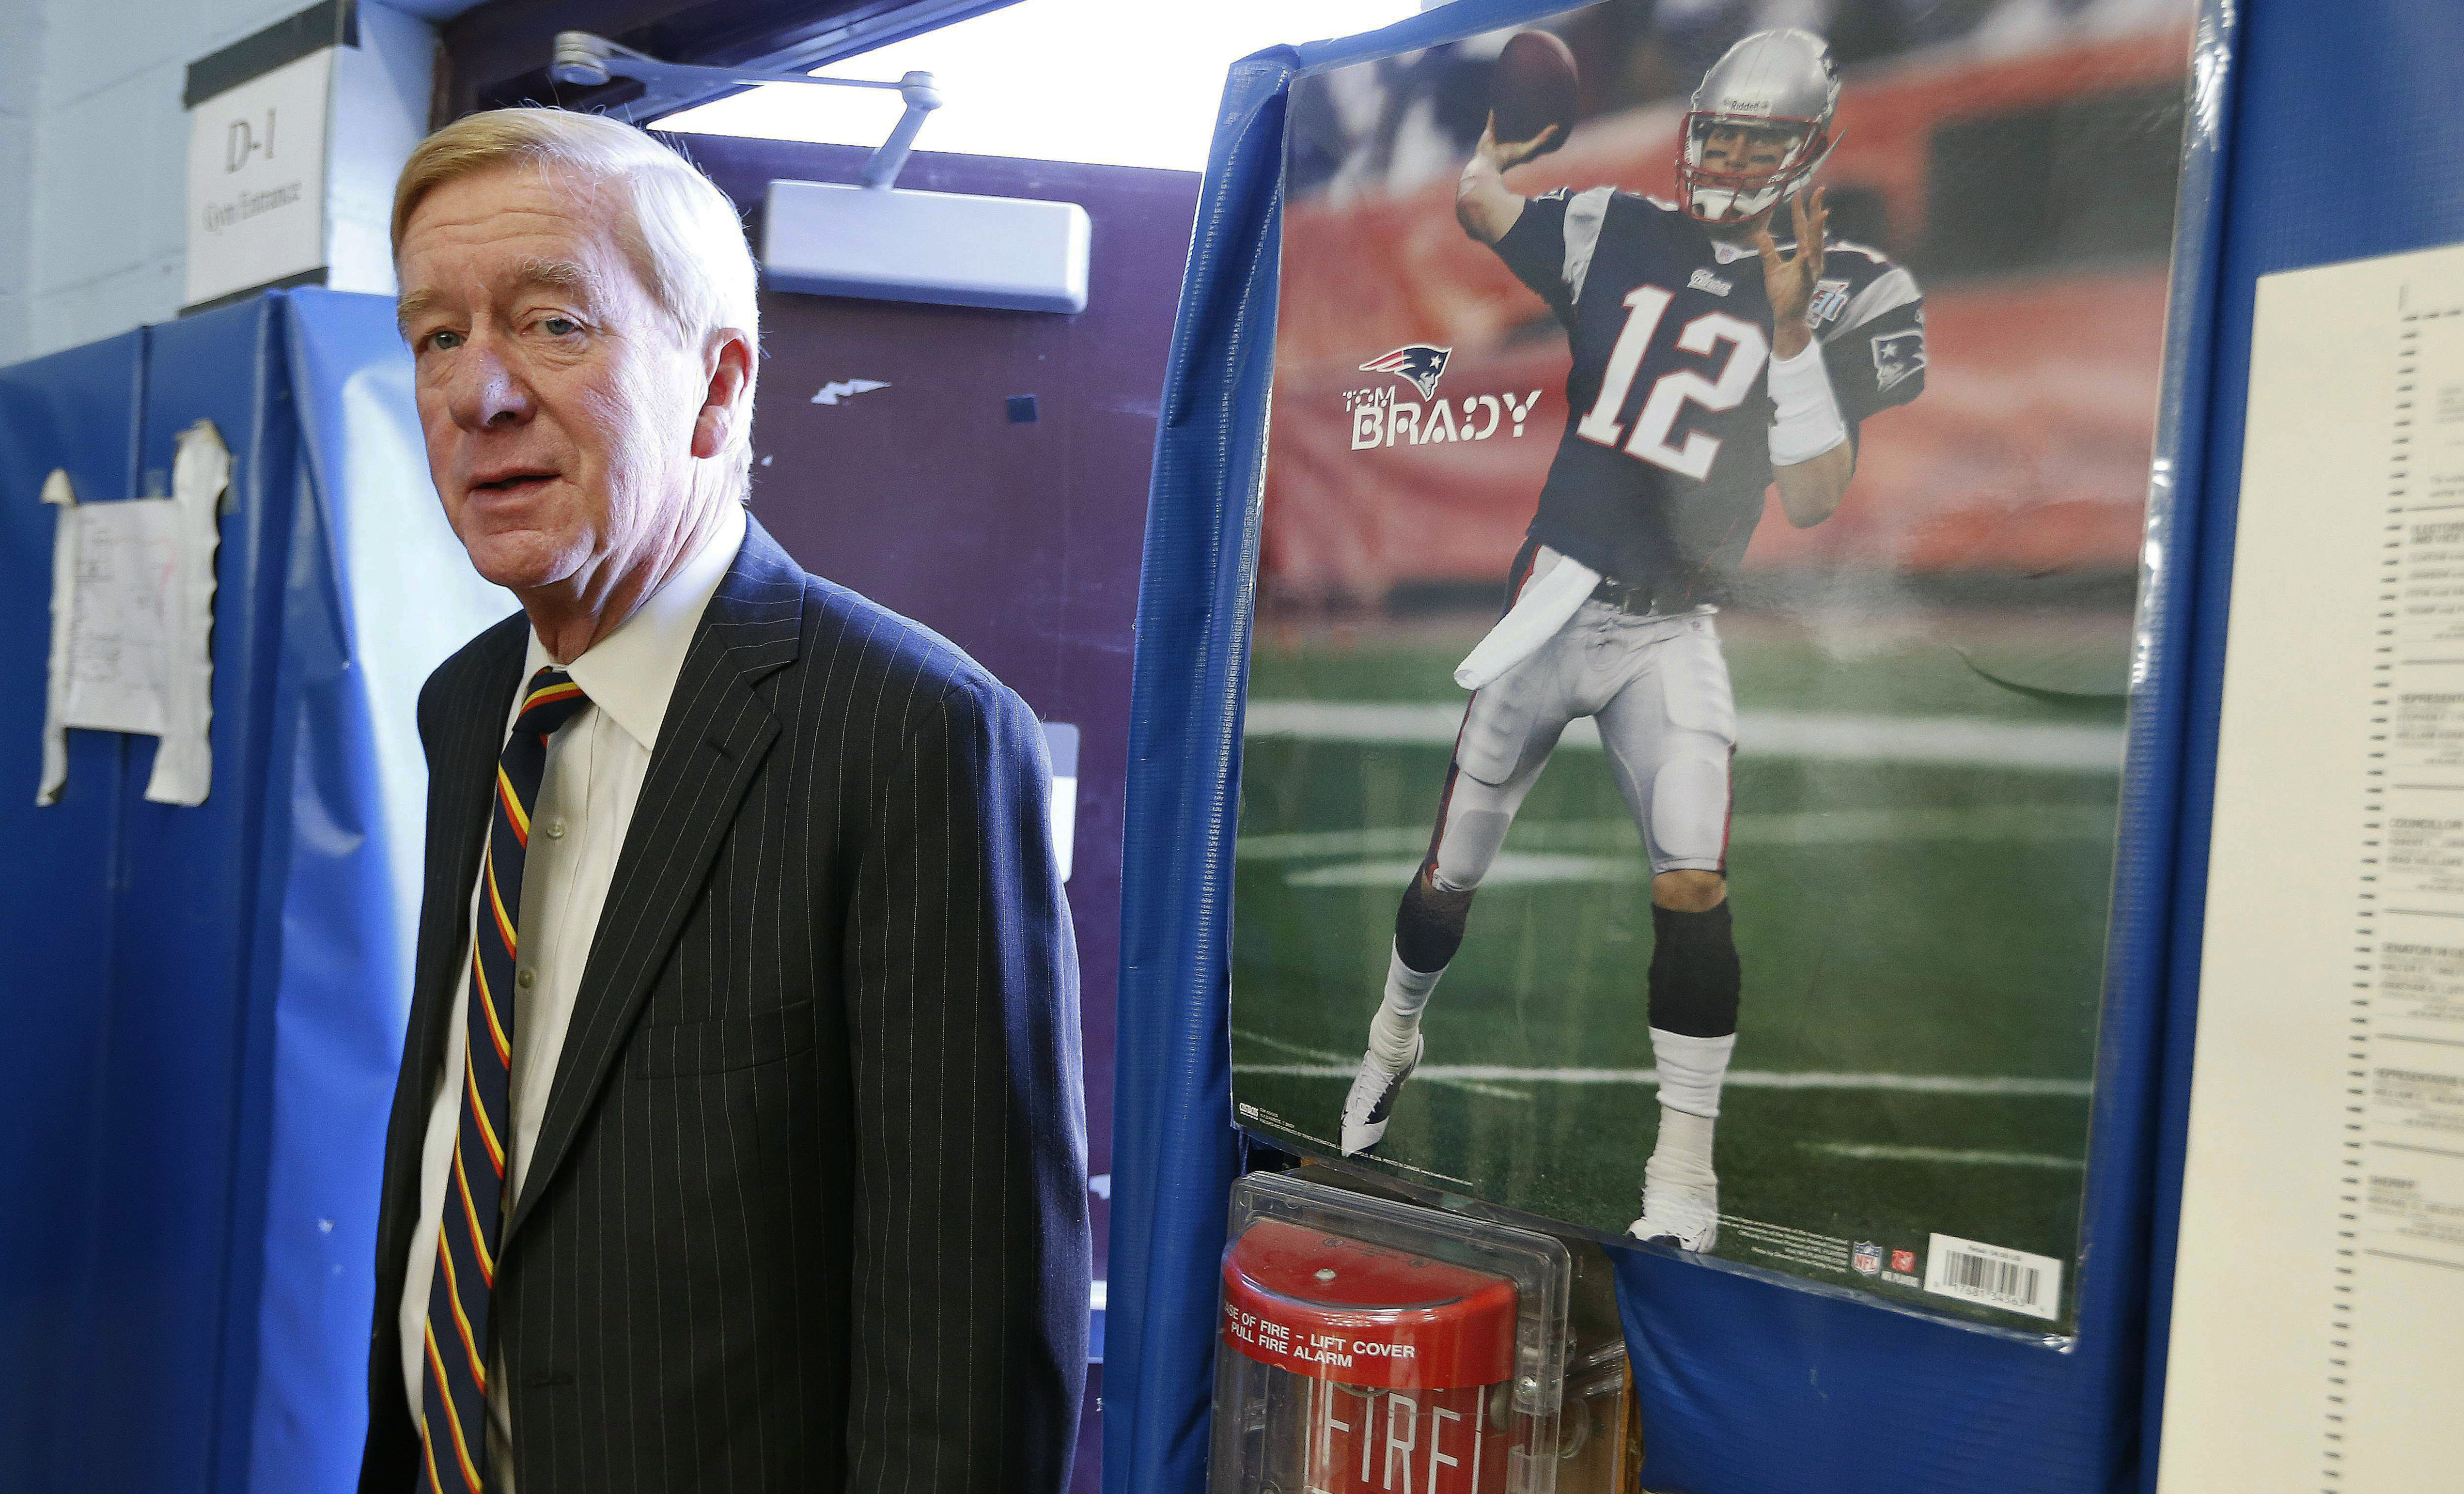 Bill Weld, GOP primary challenger to Trump, wants to disclose presidential tax returns